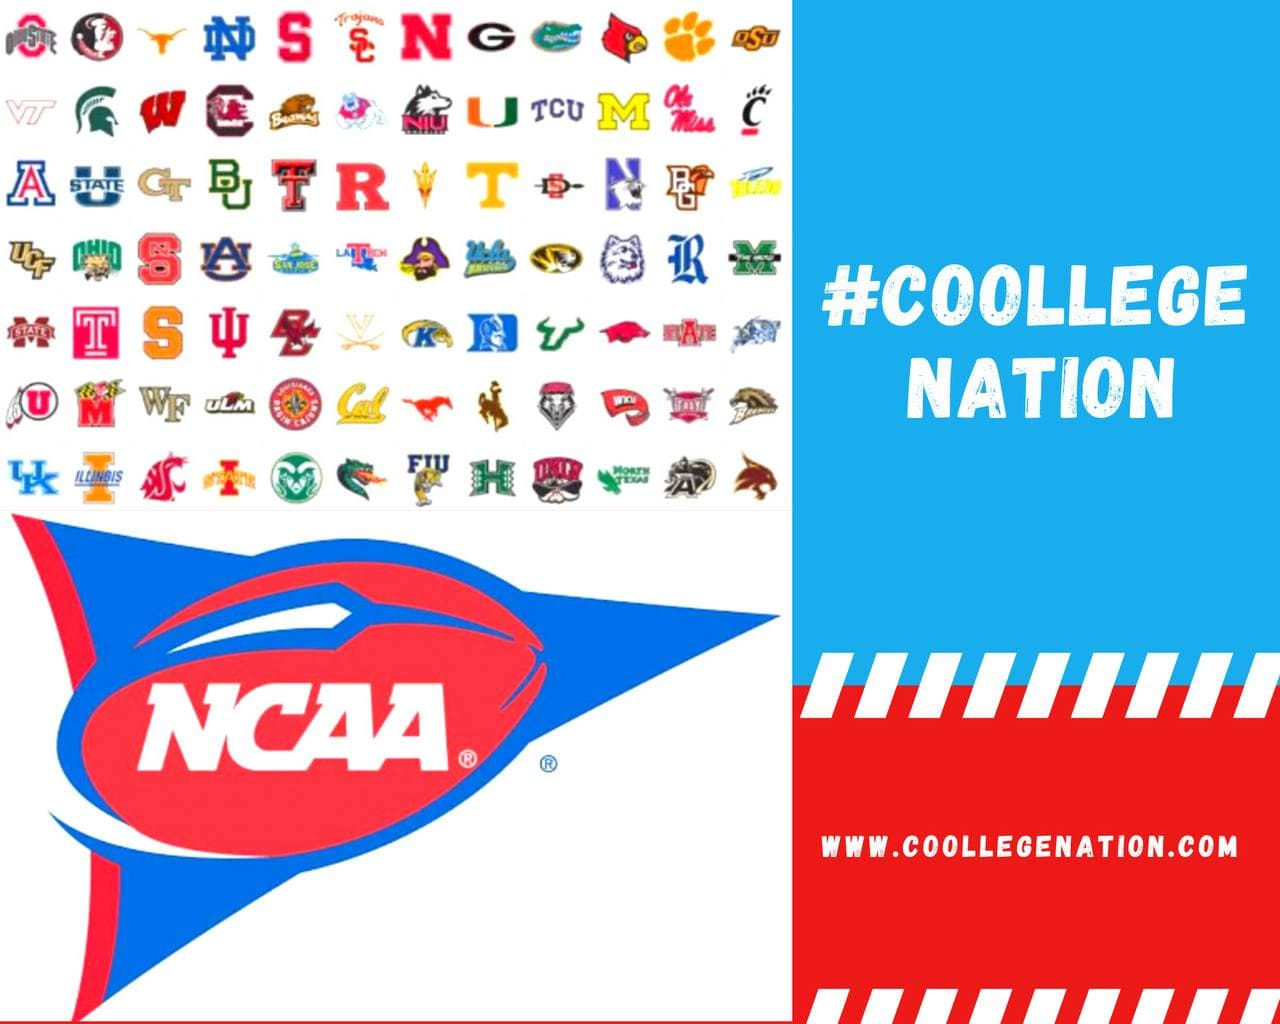 COOLLEGE NATION